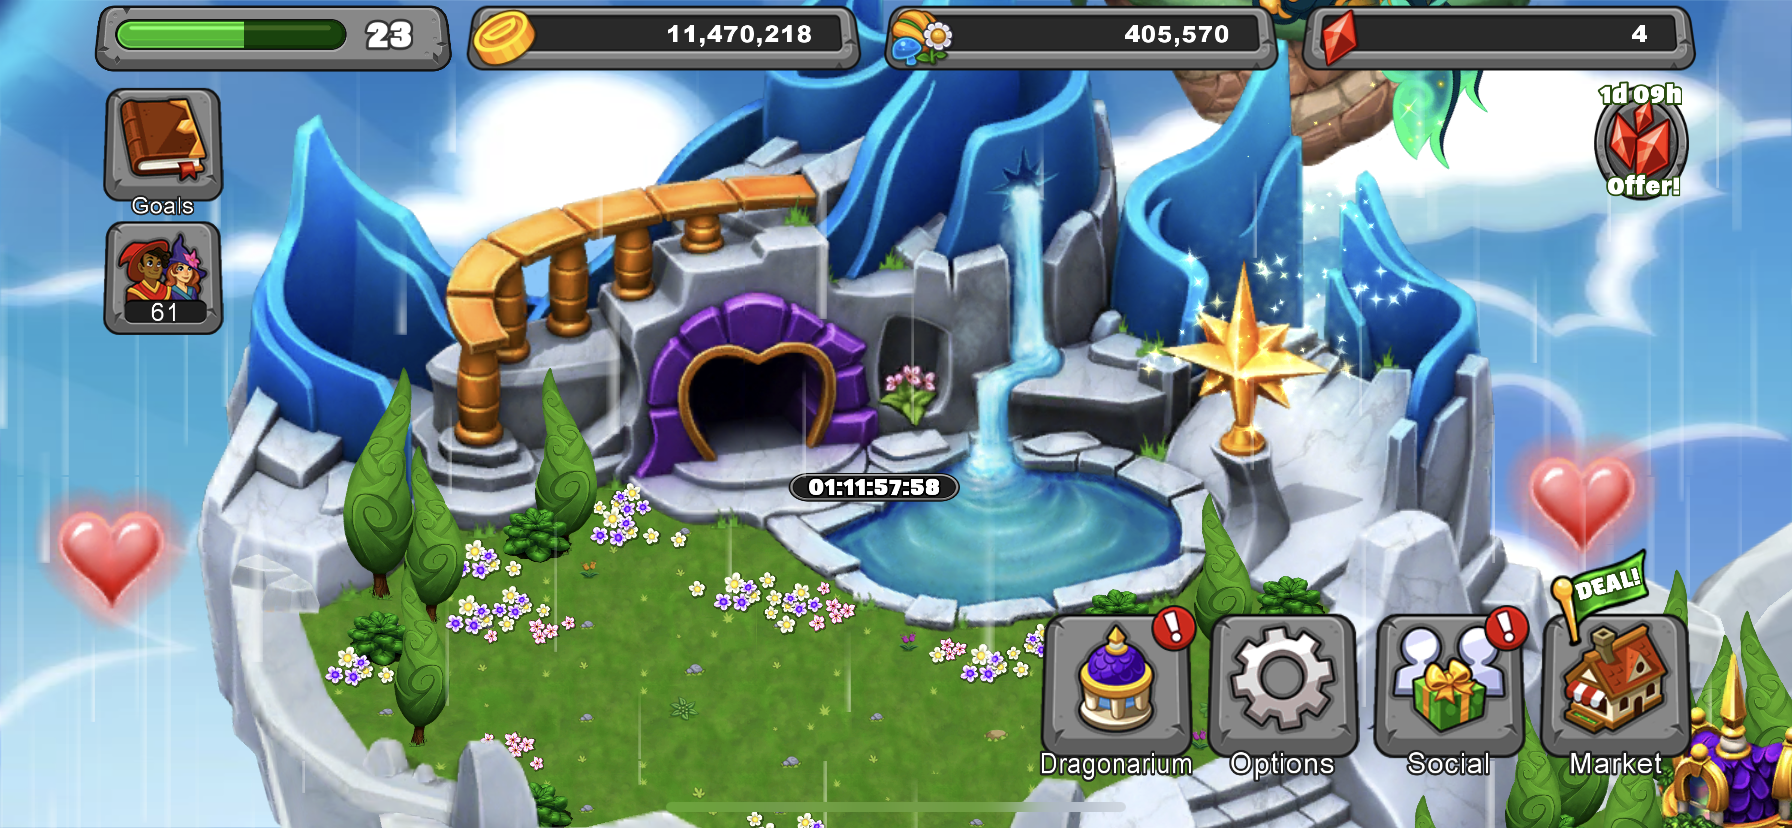 Does anyone know what this could be? I bred a Teidian dragon and a Nebula